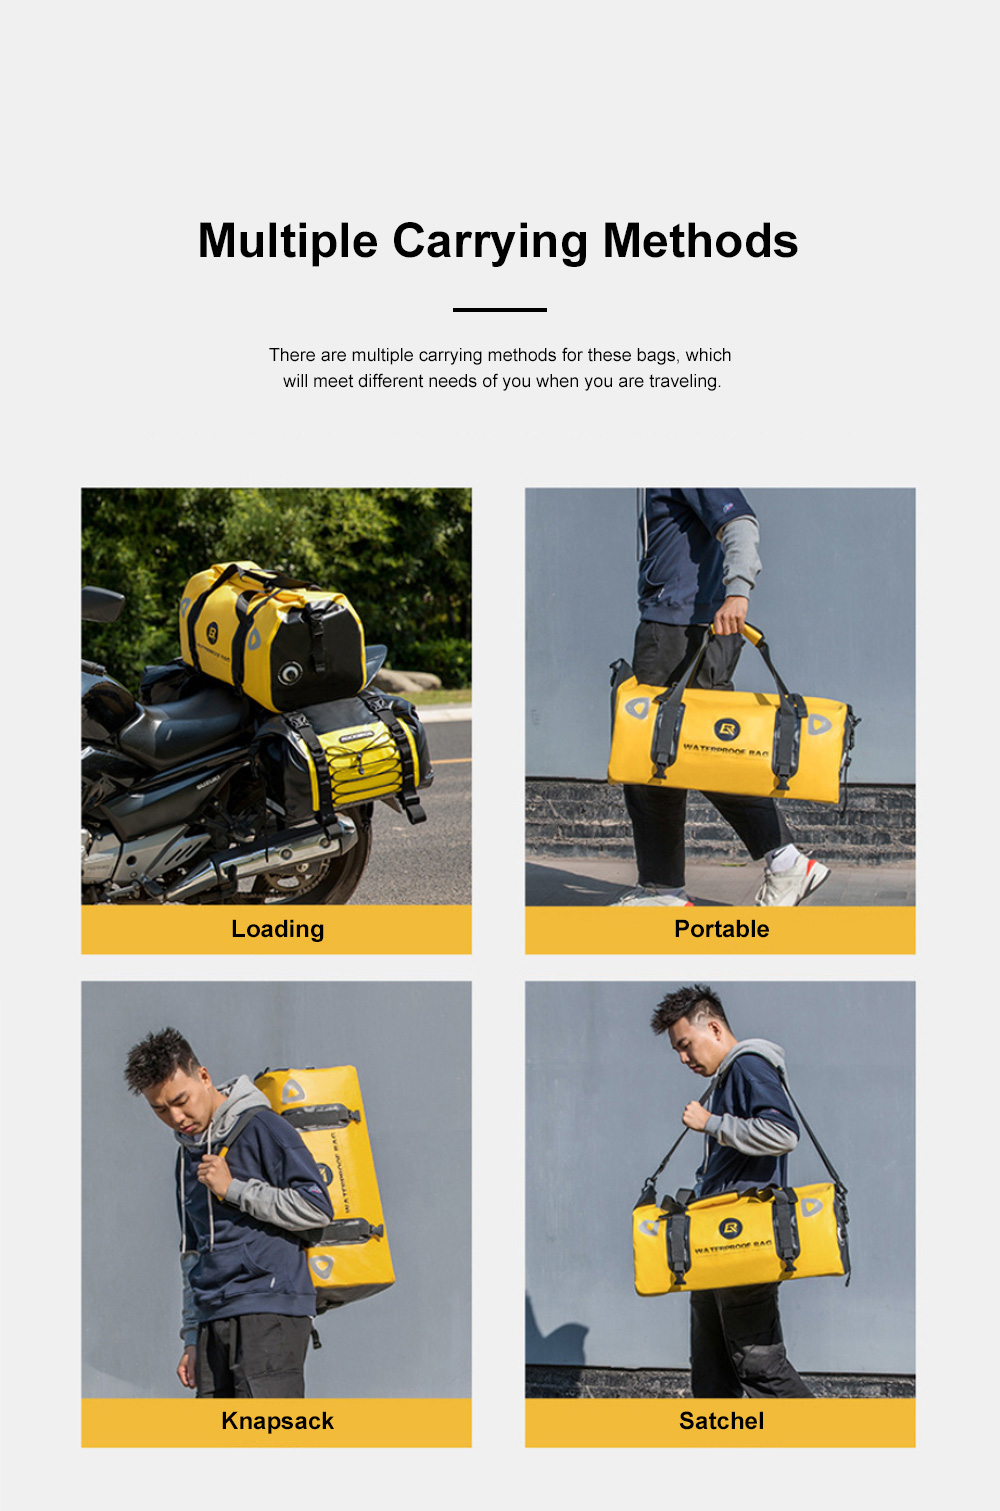 ROCKBROS Motorcycle Backseat Bag Portable Waterproof Large Capacity Functional Motorcycle Traveling Baggage Luggage Bag Pack Riding Accessories 4